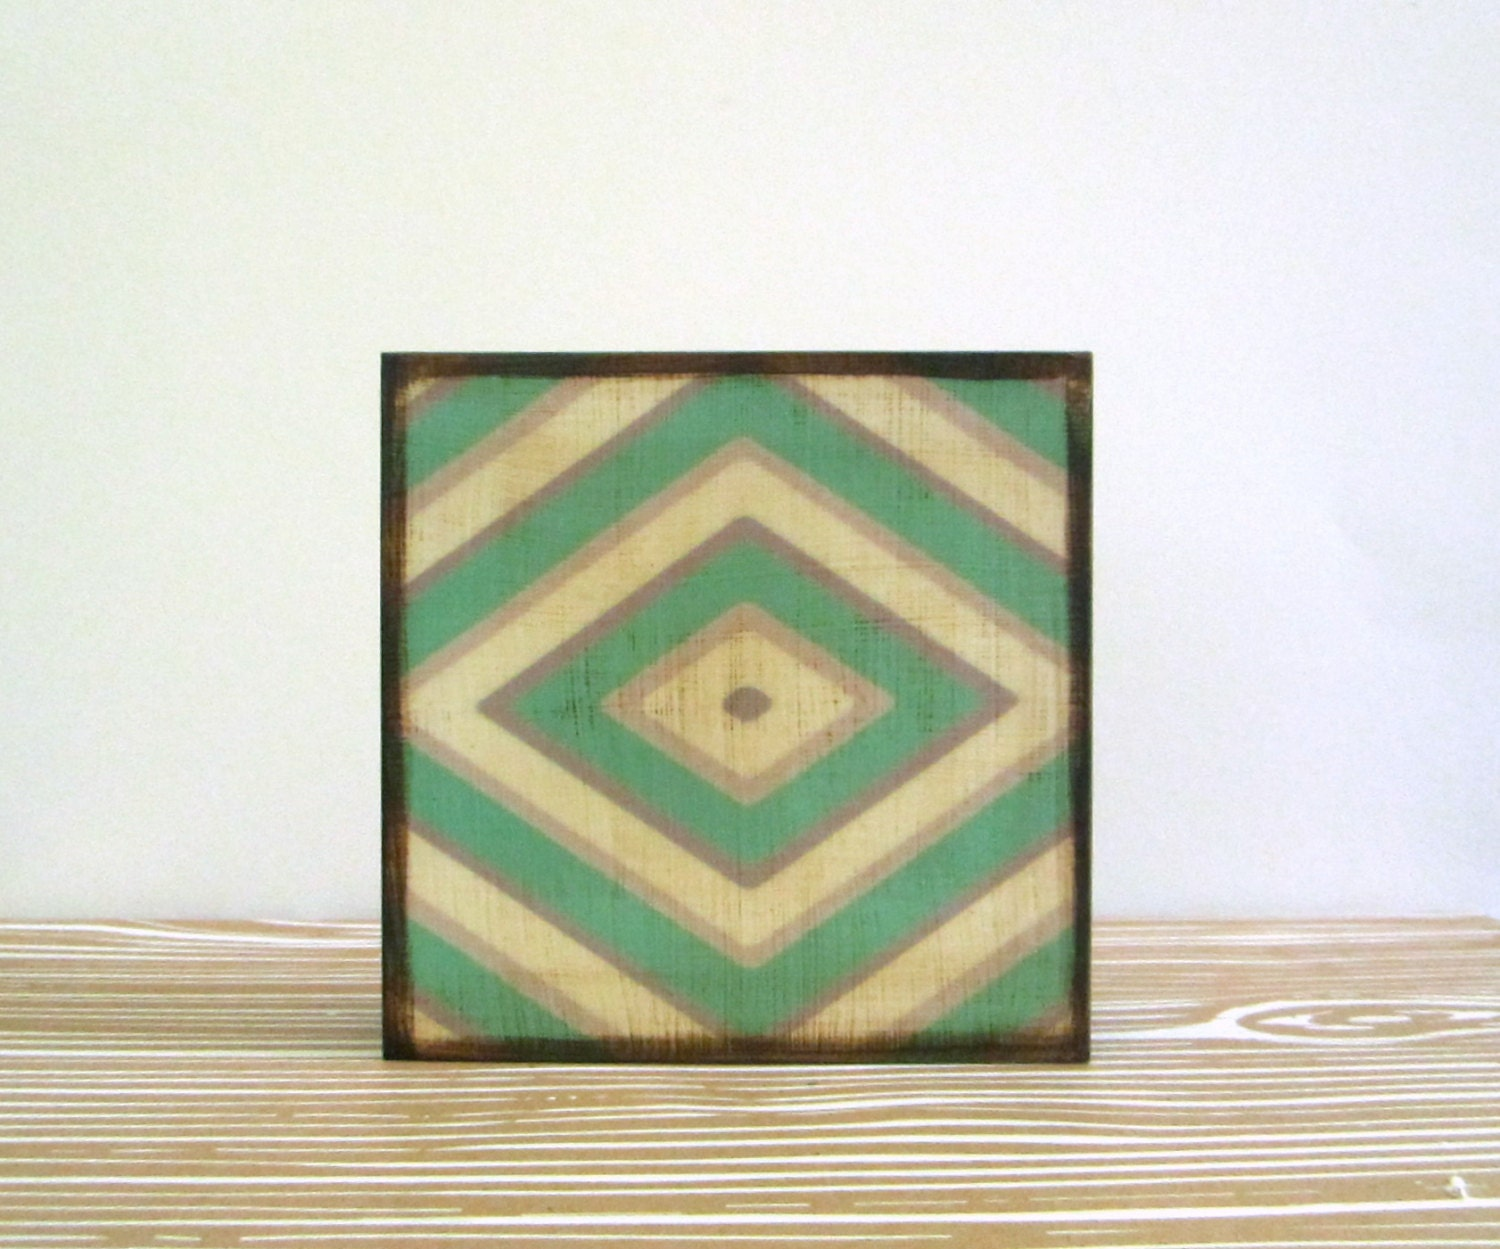 Striped Diamond Wall Decor l Art  Block 5x5 l green emerald gray white wood redtilestudio - redtilestudio